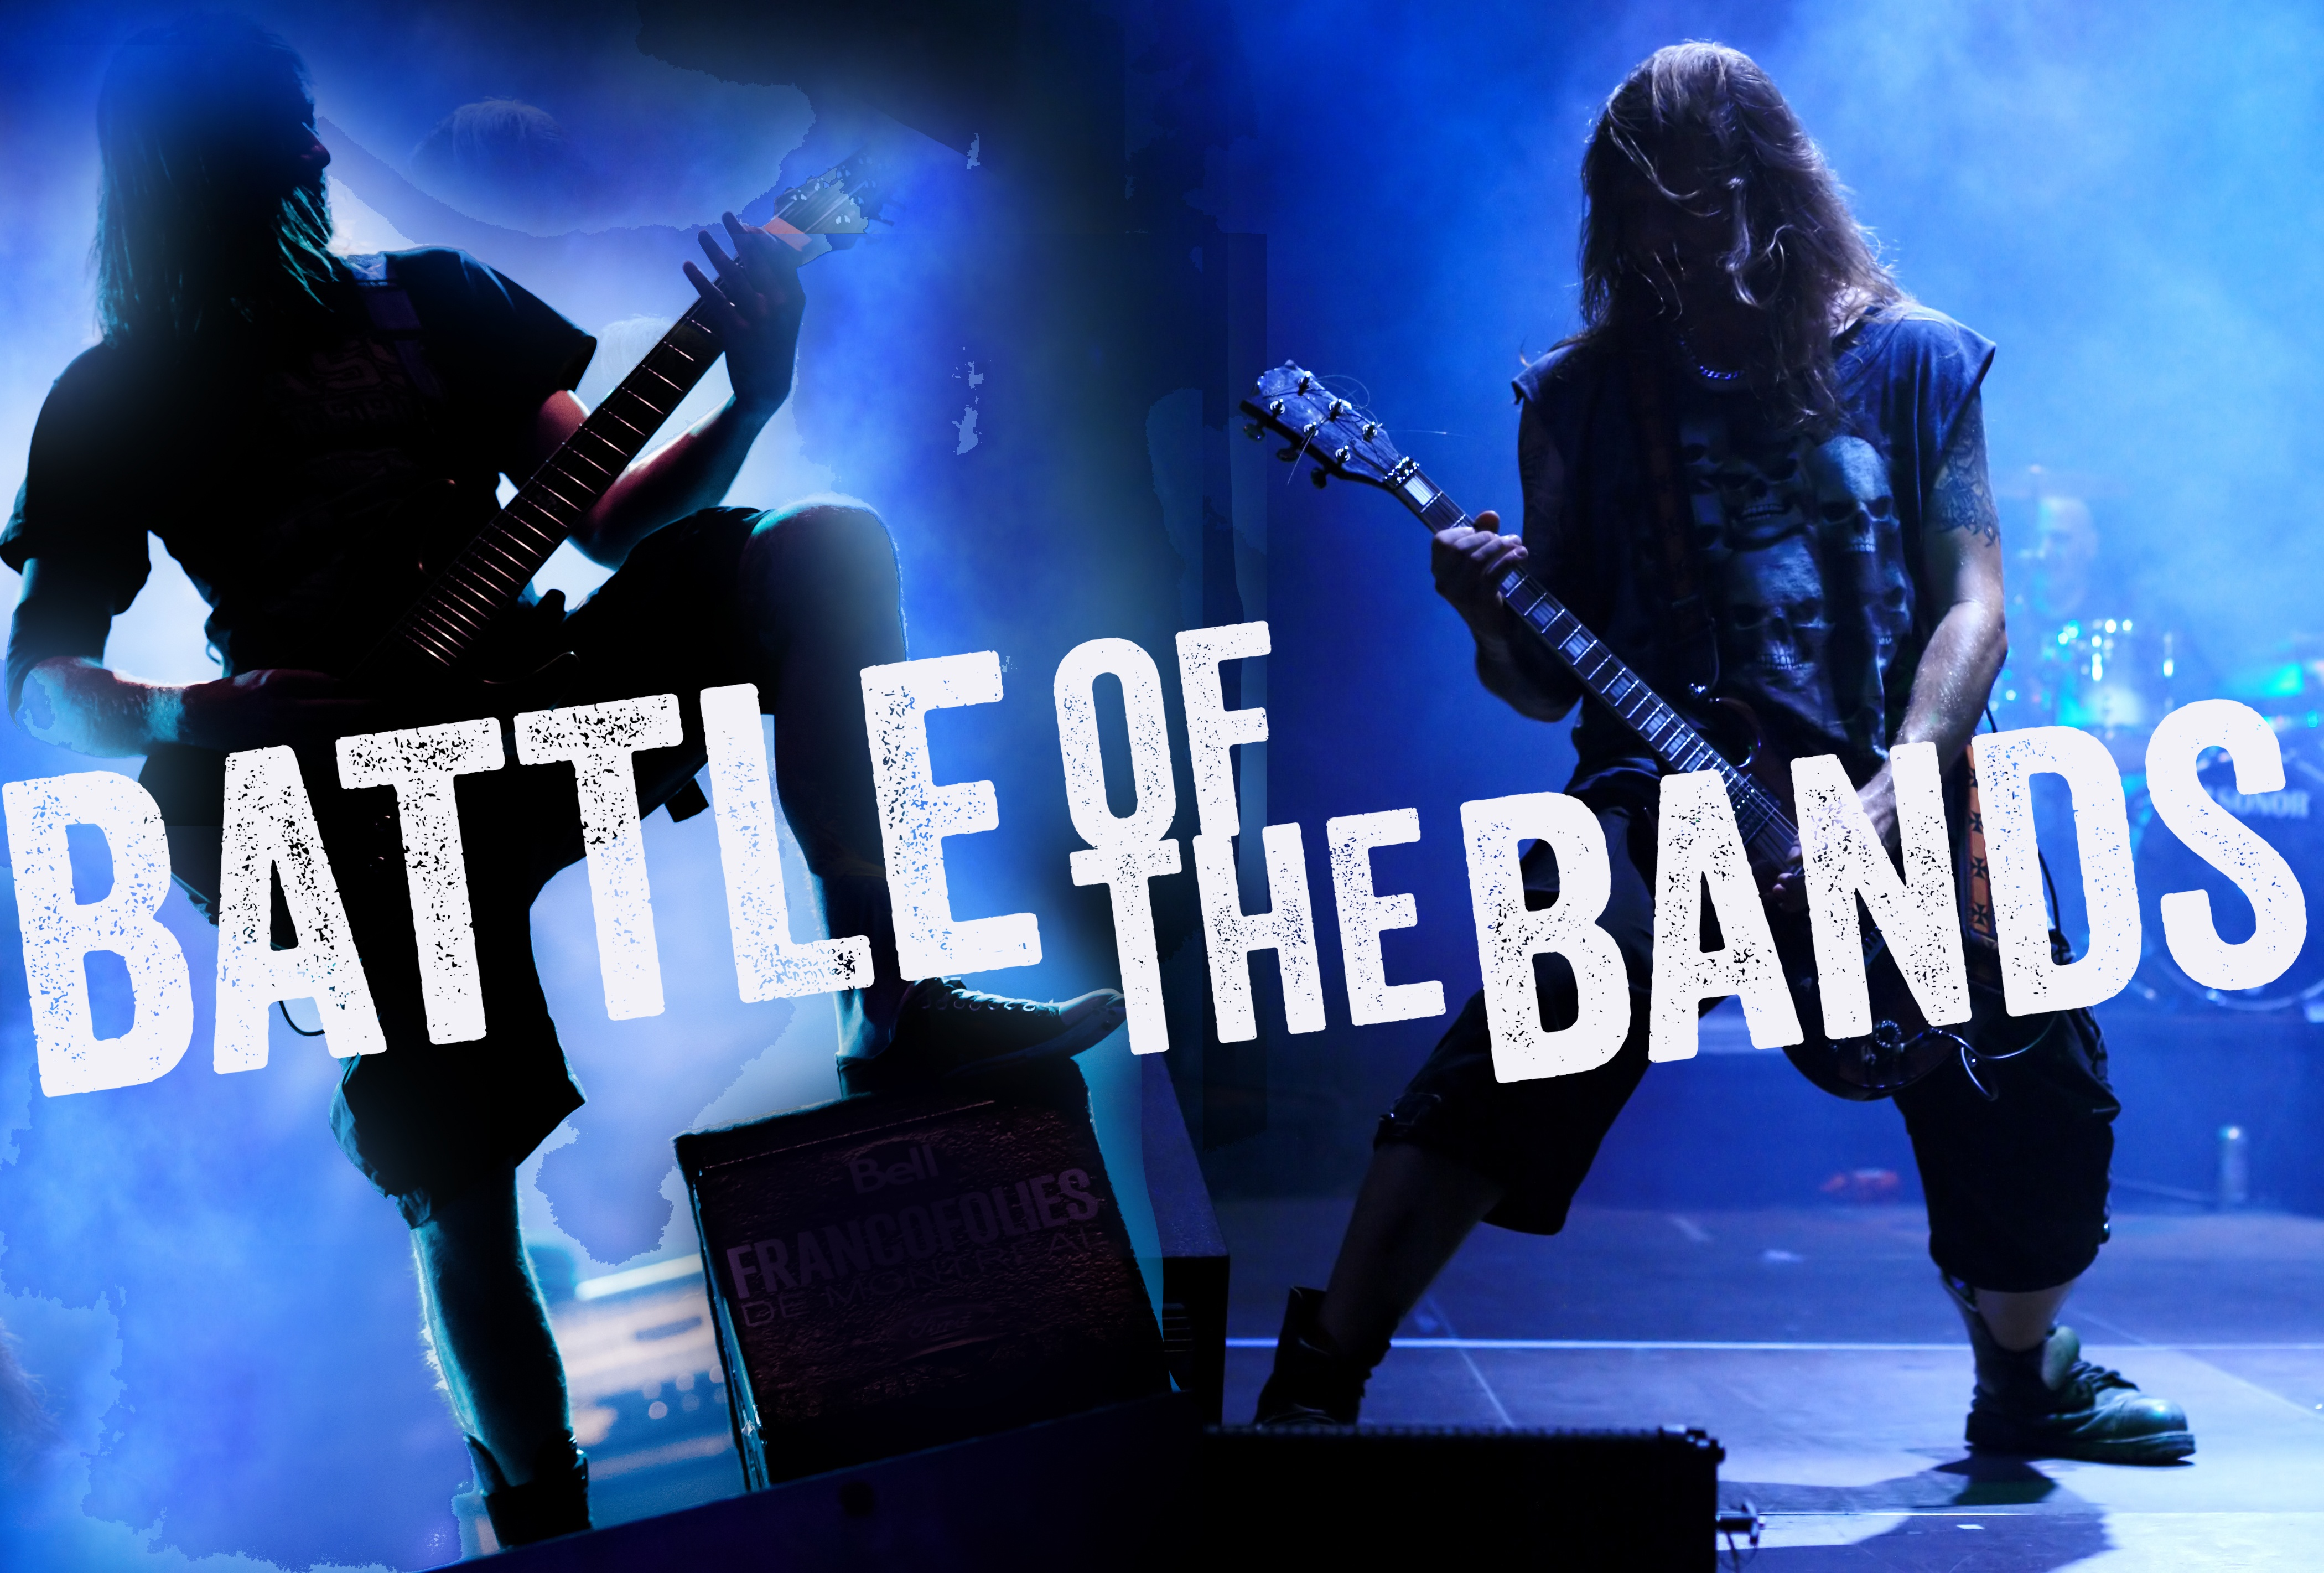 Battle of the bands_shutterstock_5060362